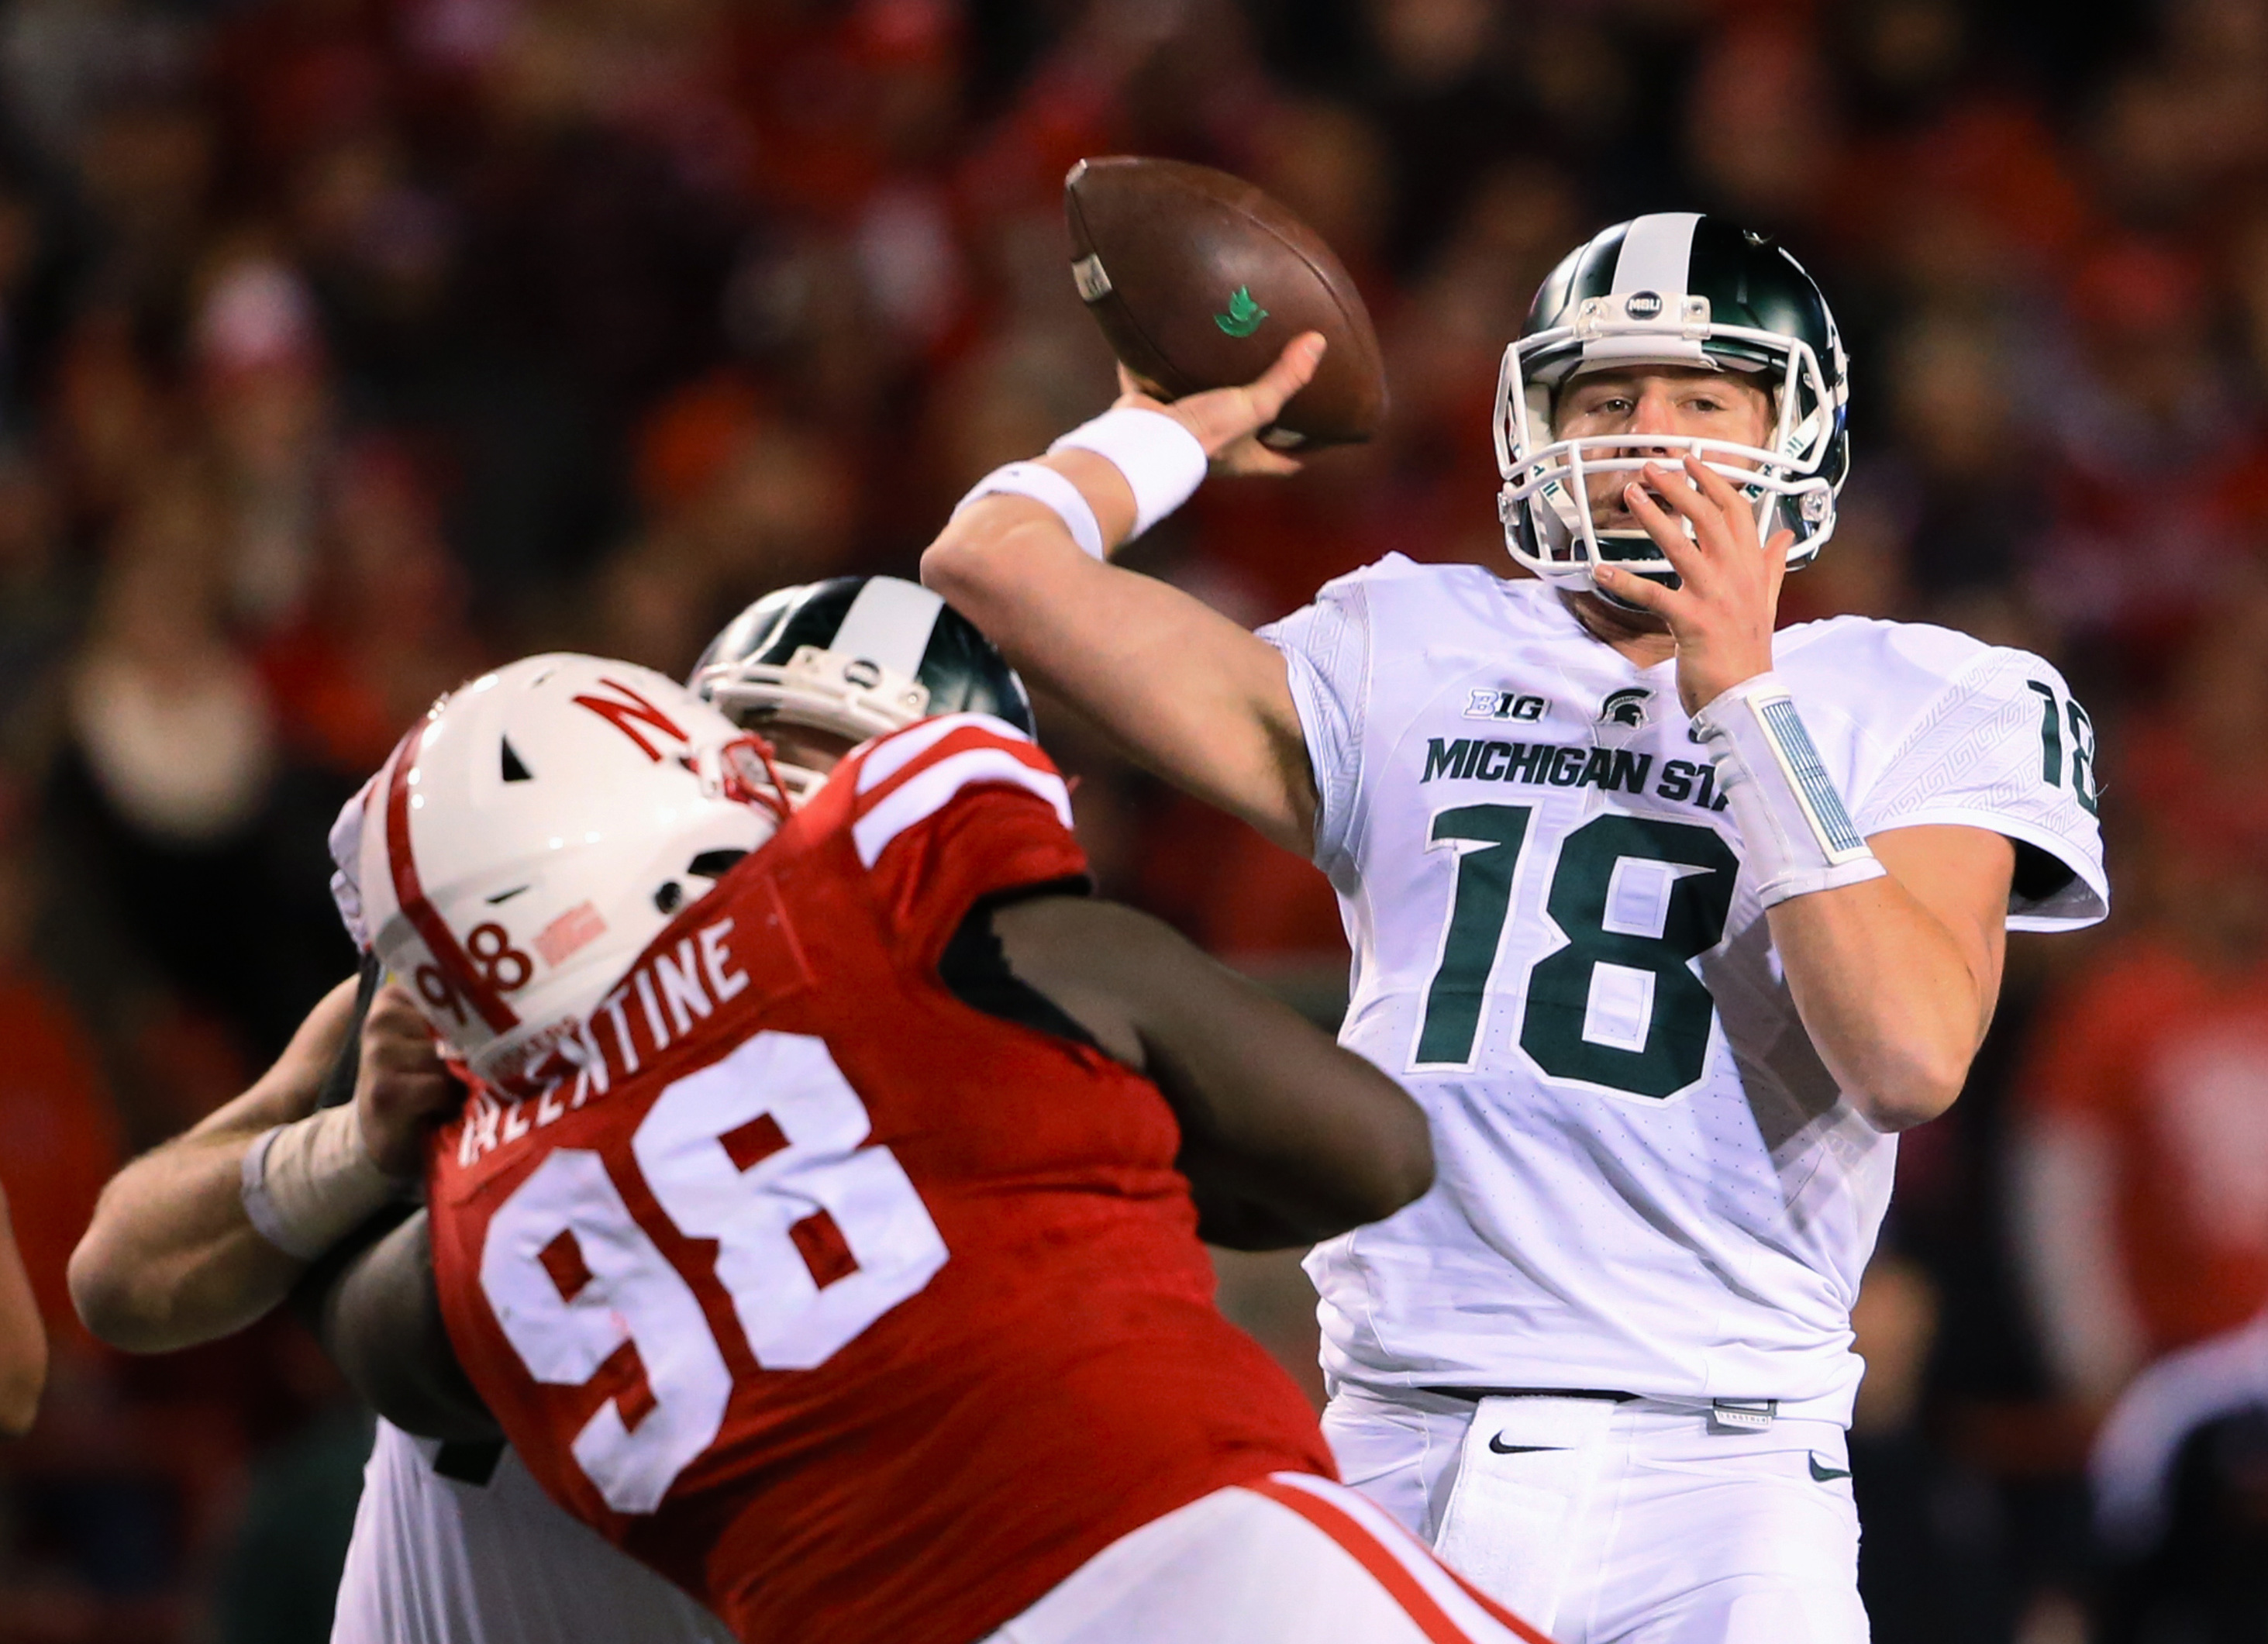 FILE - In this Nov. 7, 2015, file photo, Michigan State quarterback Connor Cook (18) throws during the team's NCAA college football game against Nebraska in Lincoln, Neb. Cook missed much of last week's game after taking a shot to his throwing shoulder. H